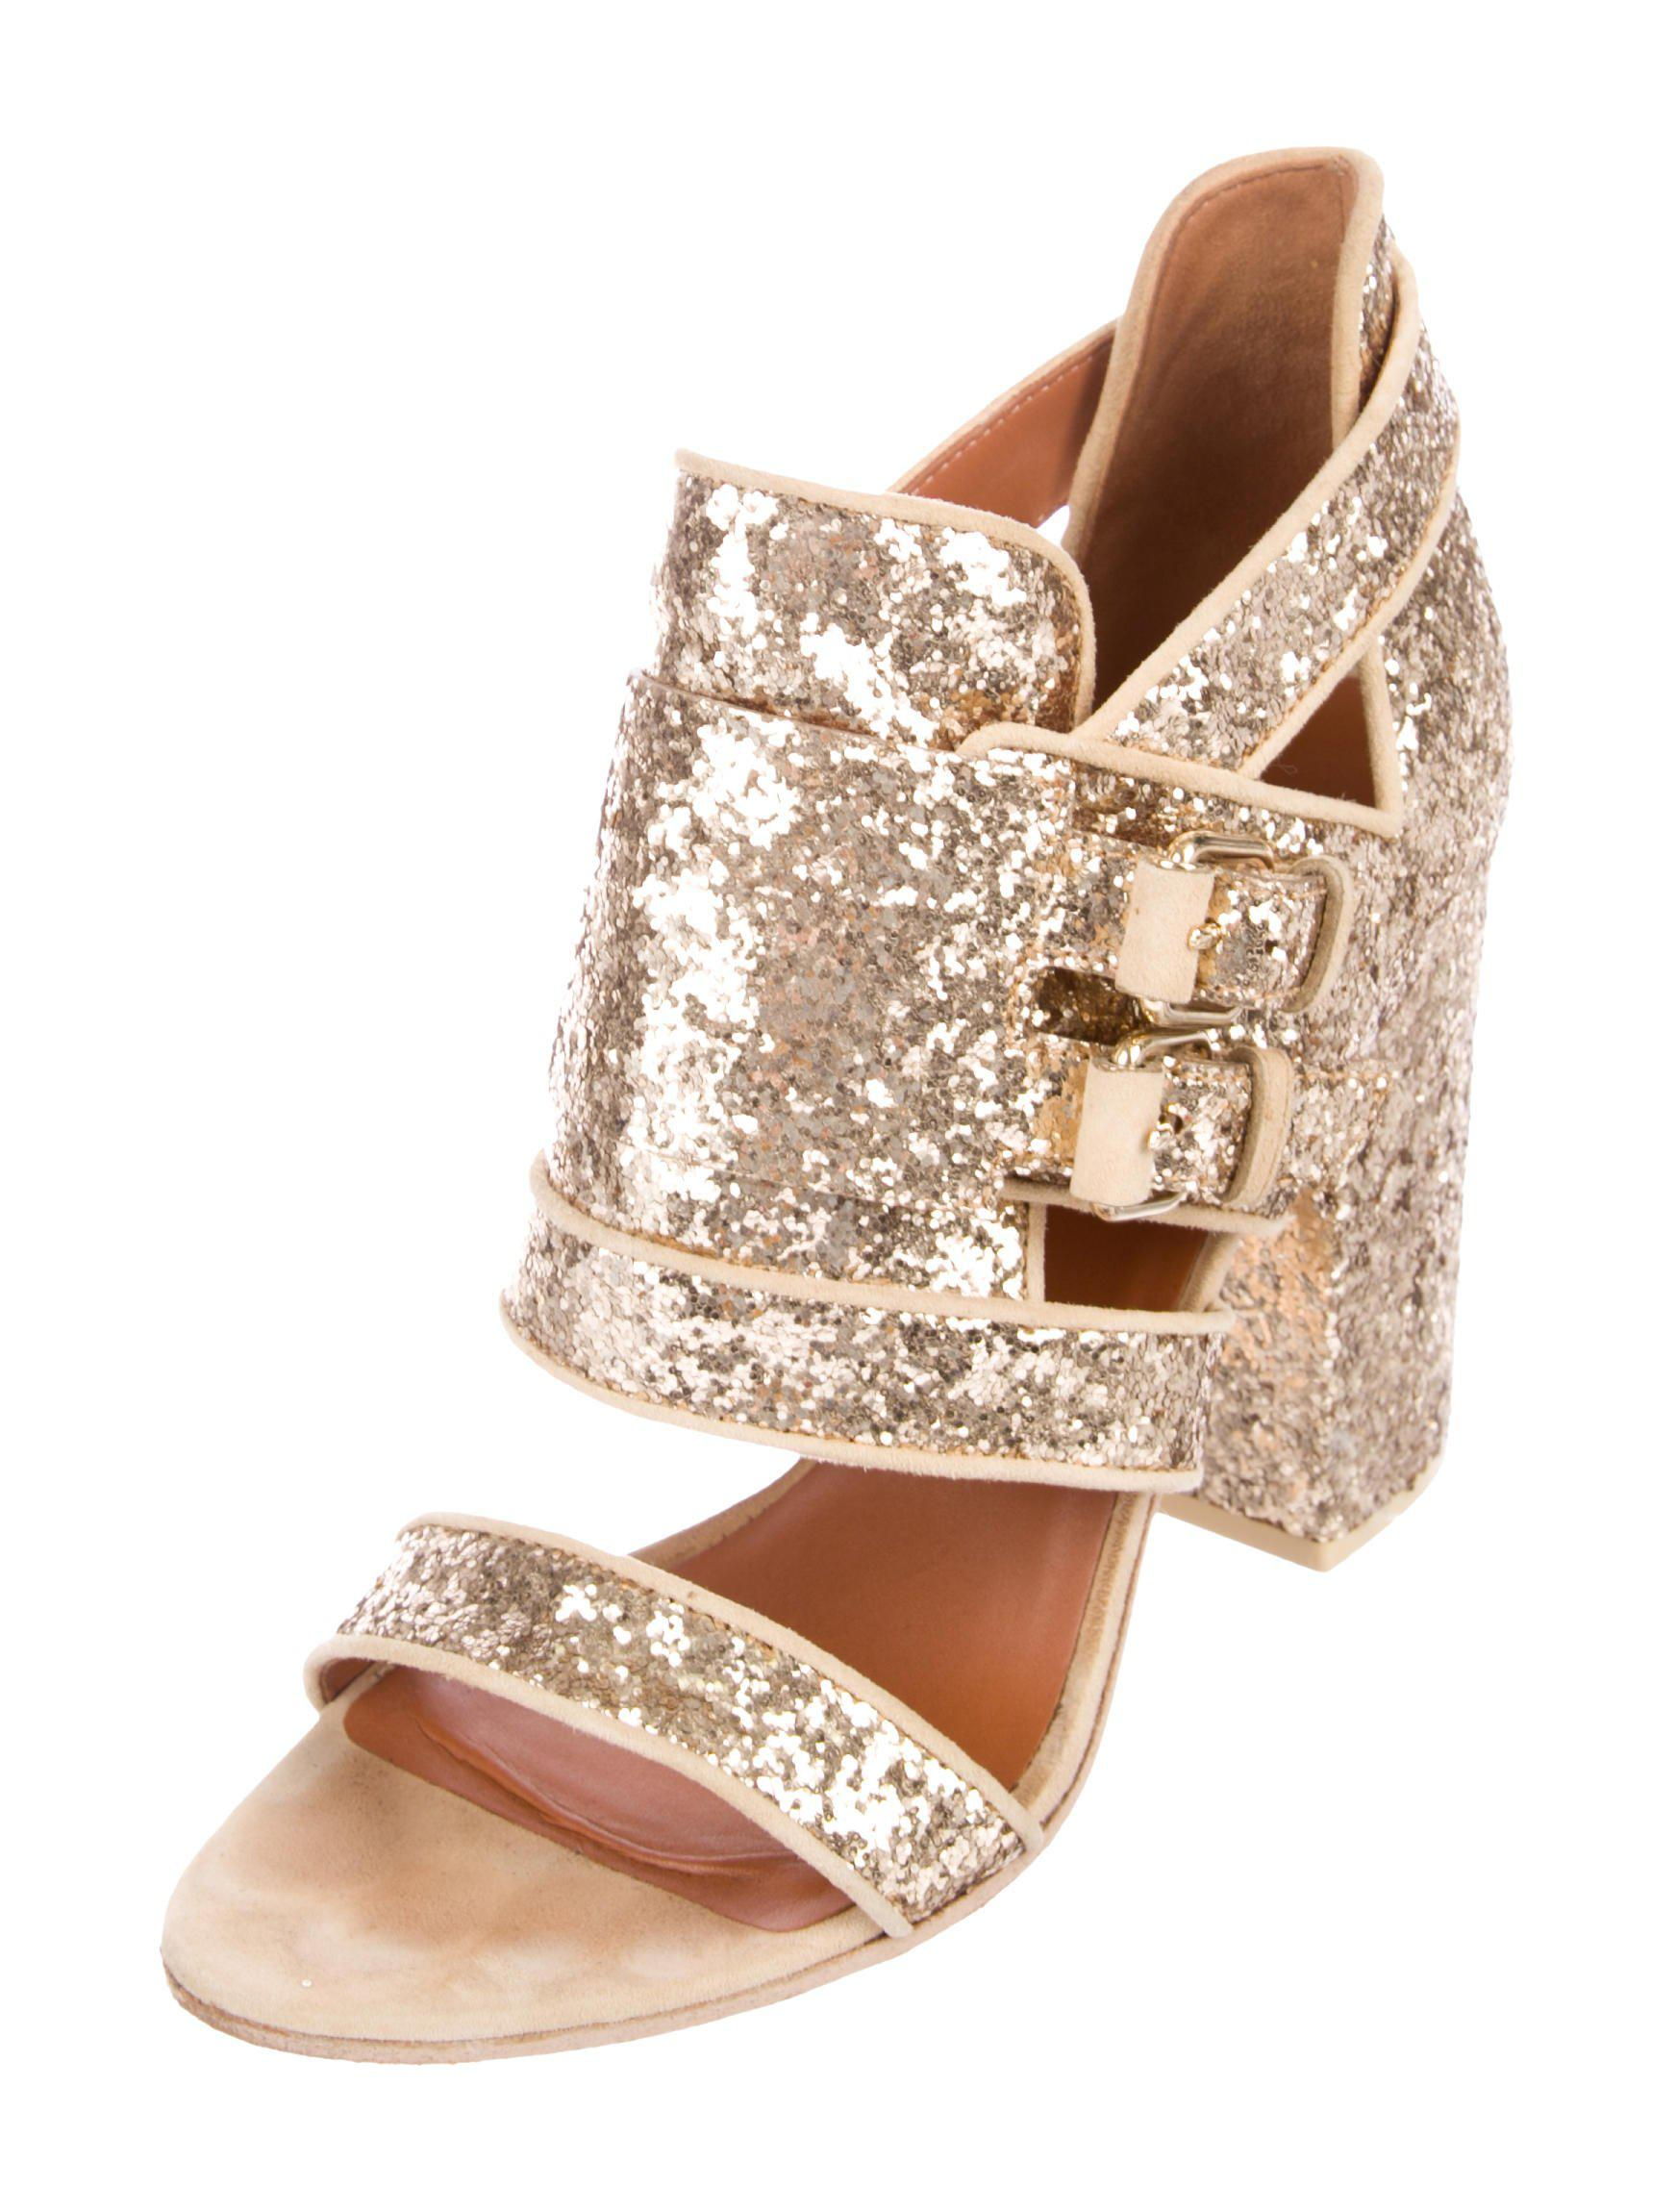 Givenchy Glitter Cage Sandals big sale cheap price zRd8Klx